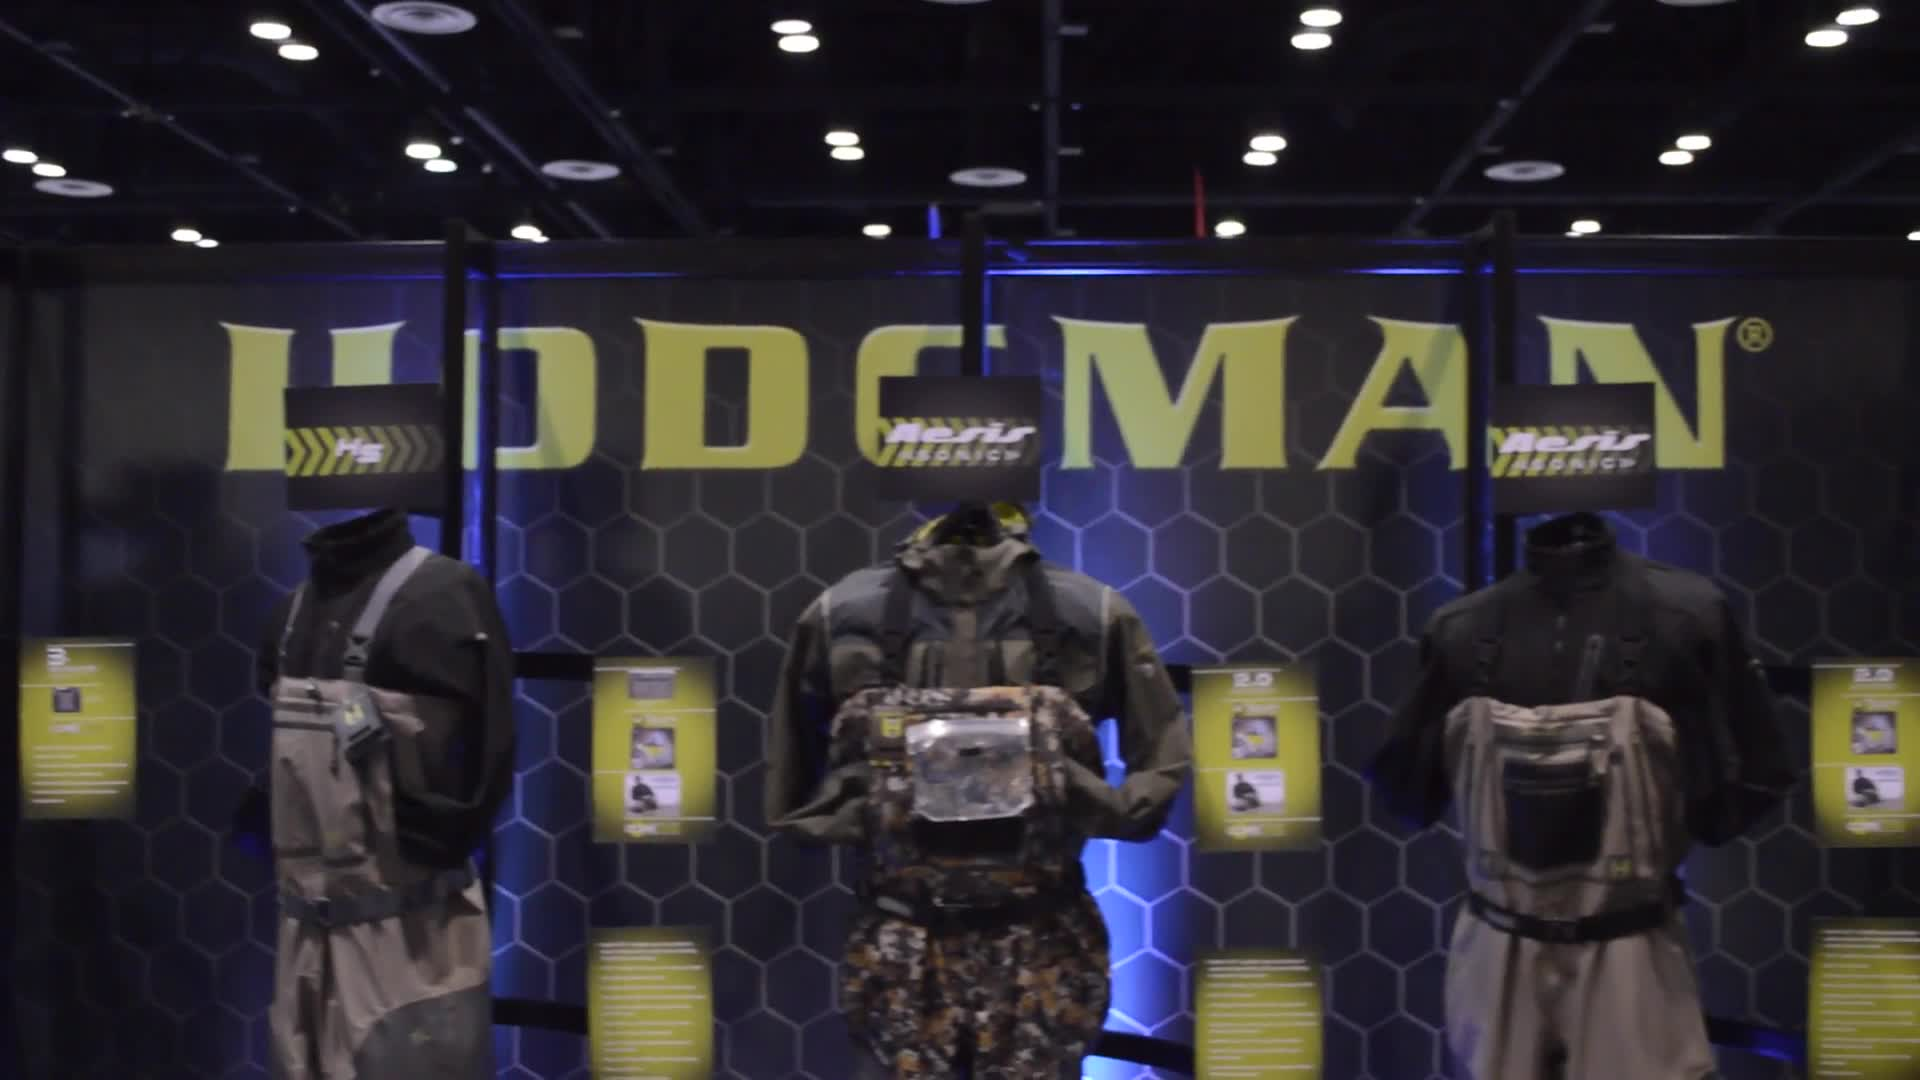 ICAST Report: The New Face of Hodgman